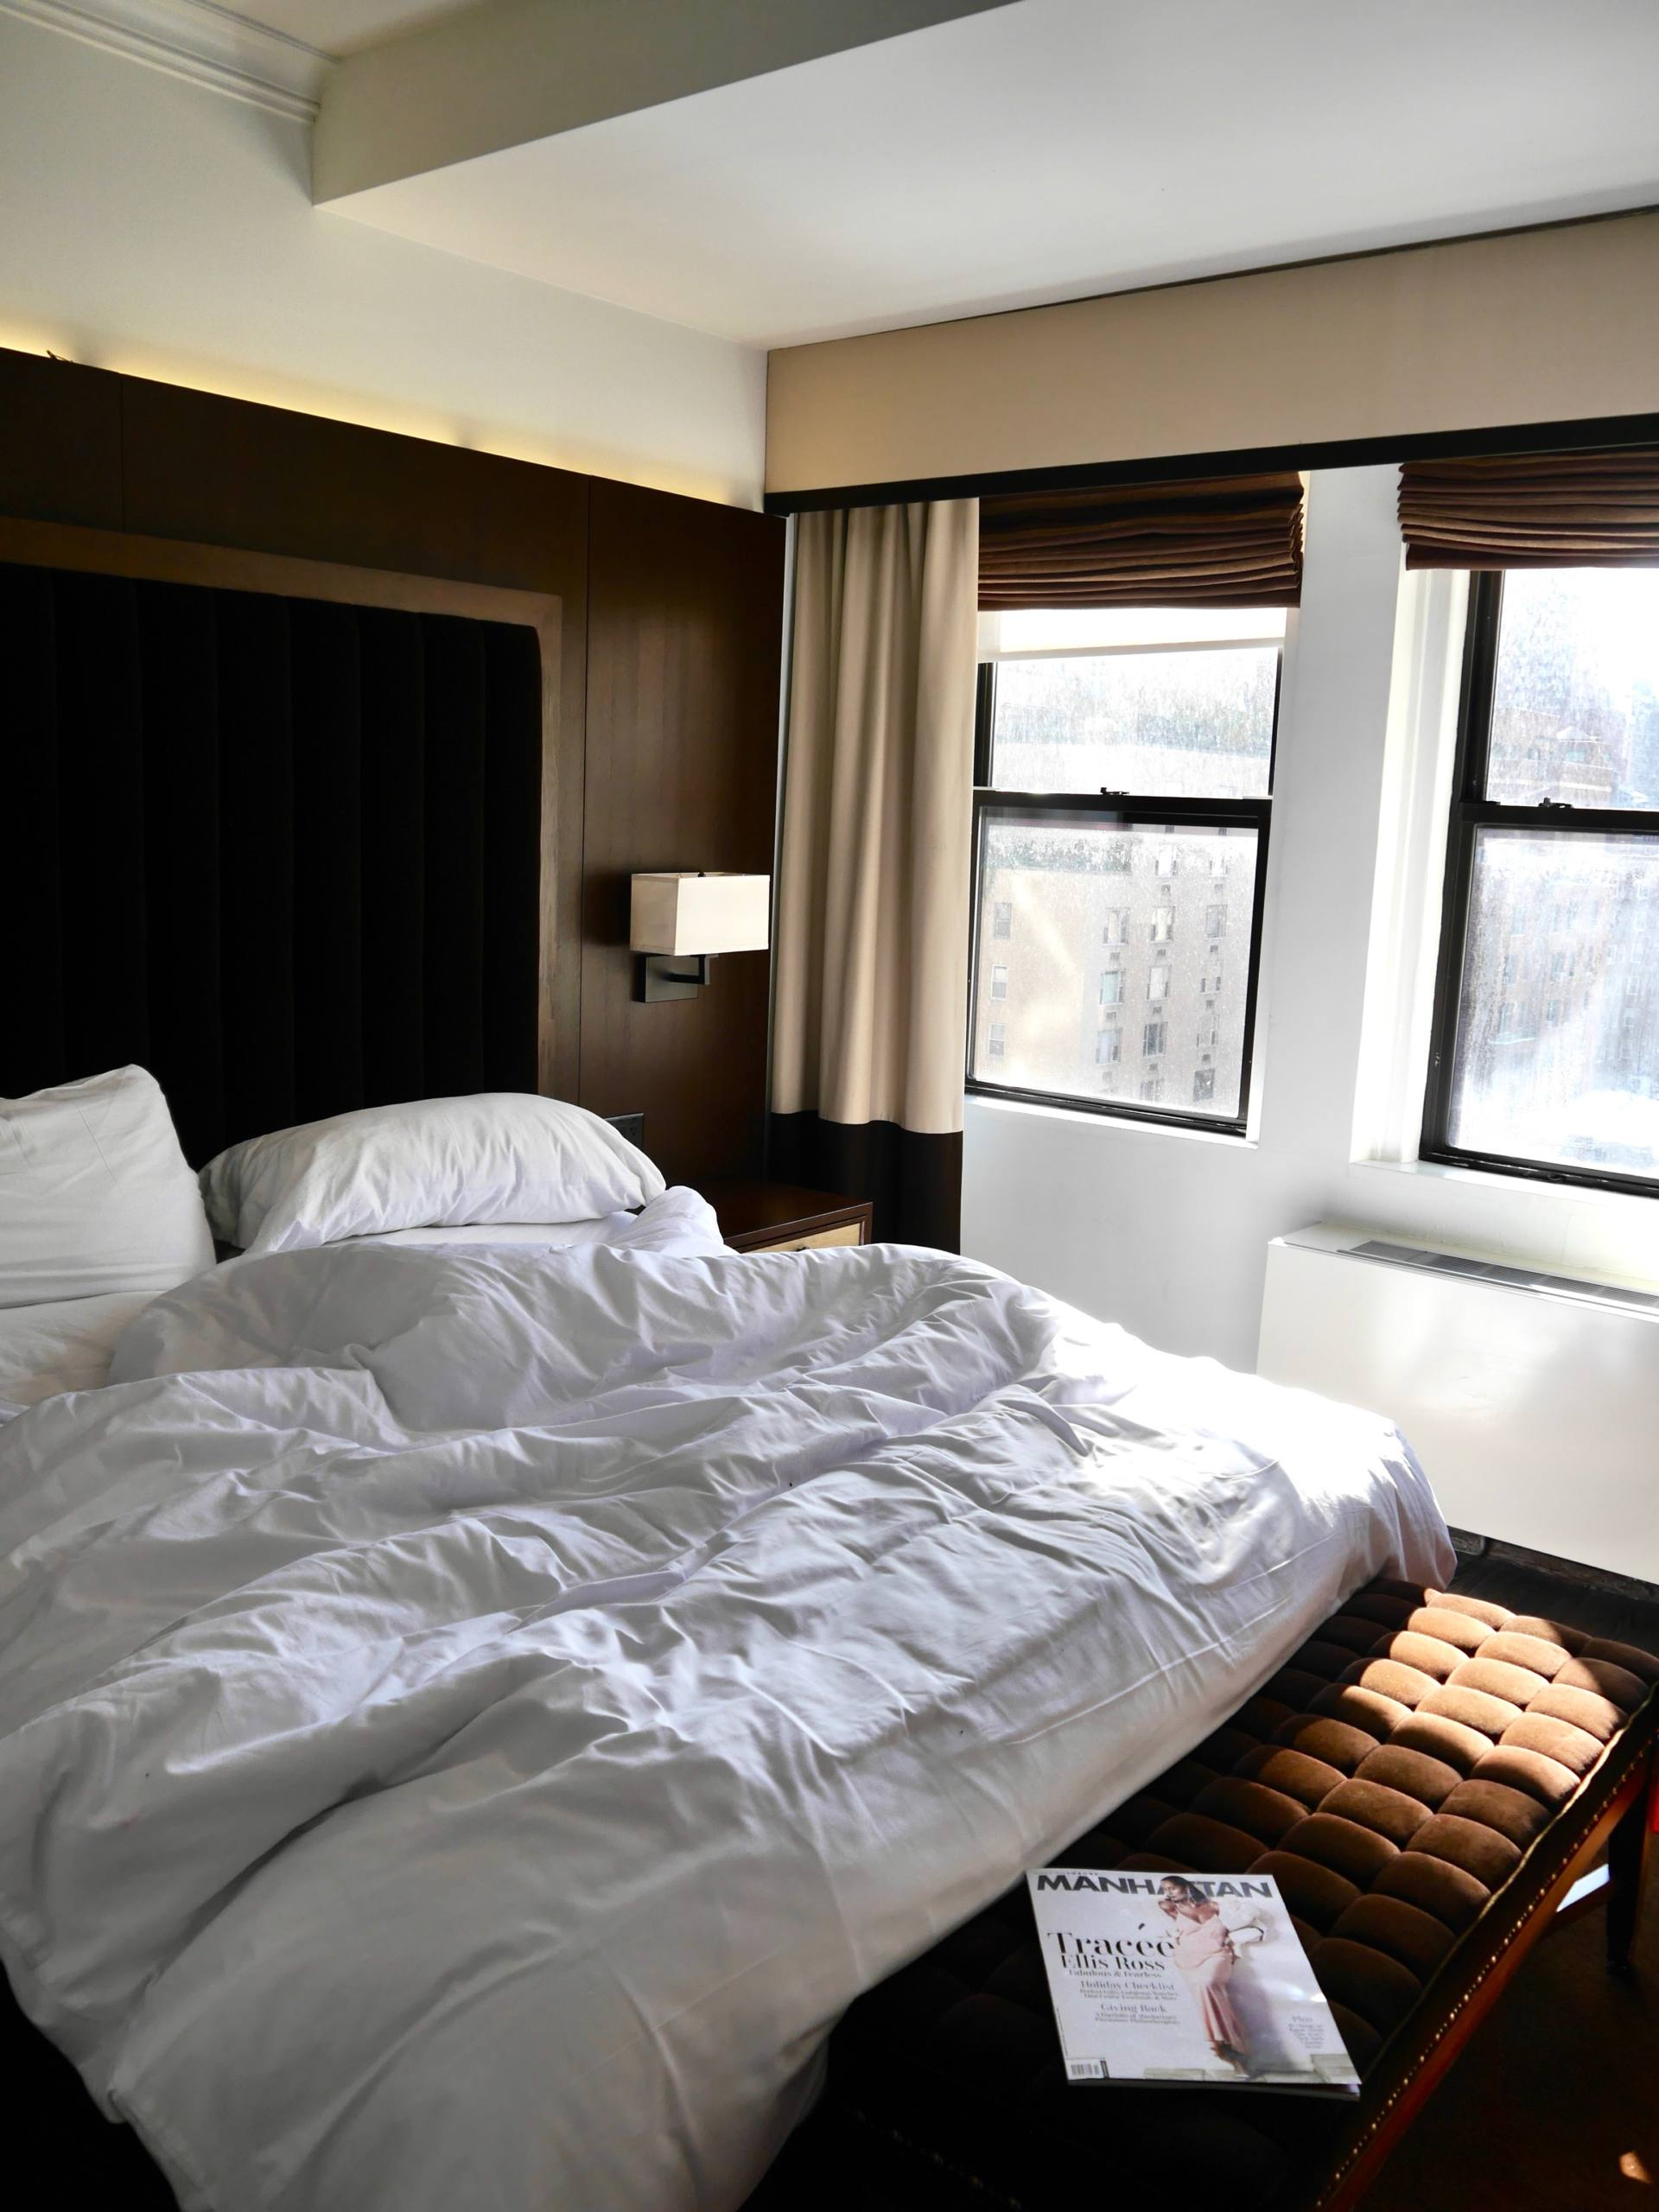 Hotels New York Hotel  Vip Coupon Code 2020